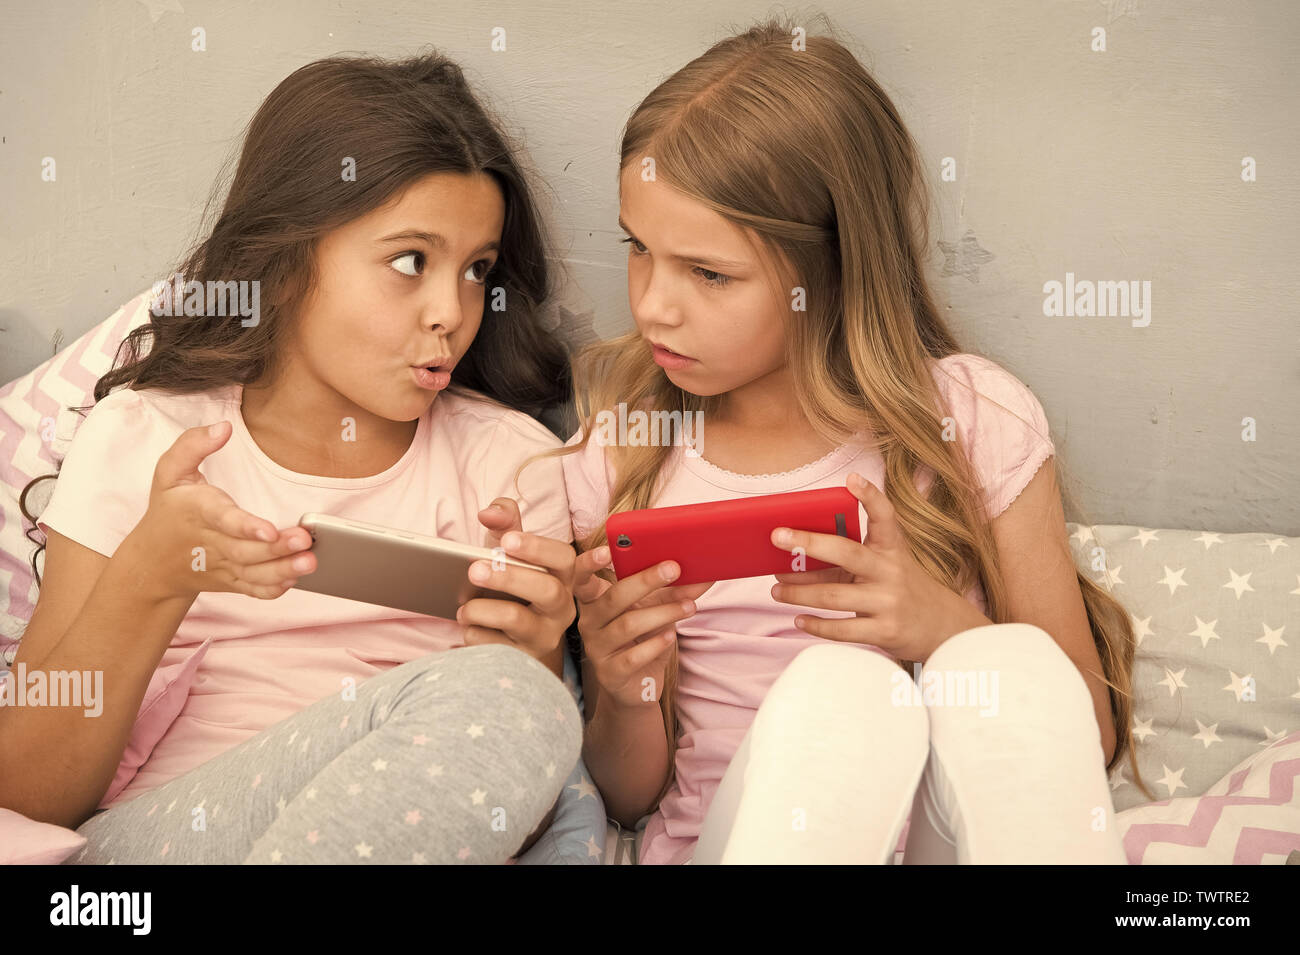 Kids play smartphone mobile game application. Smartphone application concept. Girlish leisure pajama party. Girls smartphone little bloggers. Explore social network. Smartphone for entertainment. Stock Photo